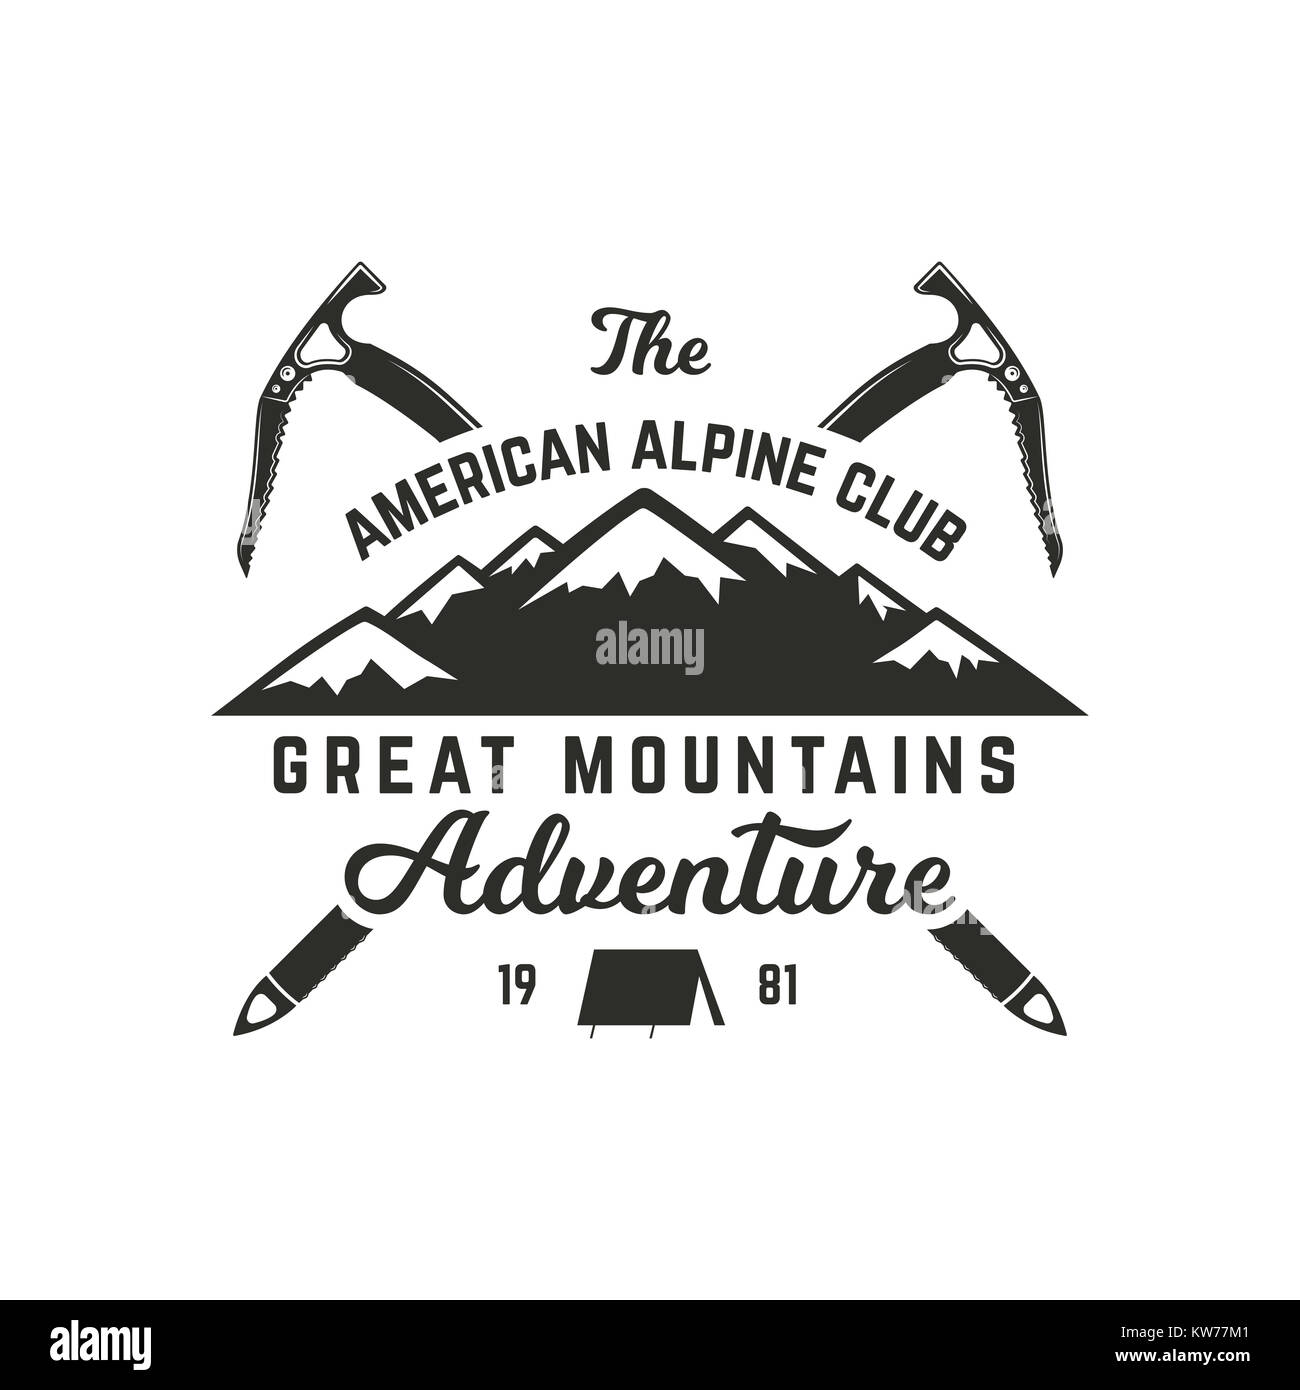 Vintage hand crafted label. Mountain expedition, outdoor adventure badge with climbing symbols and typography design. - Stock Image